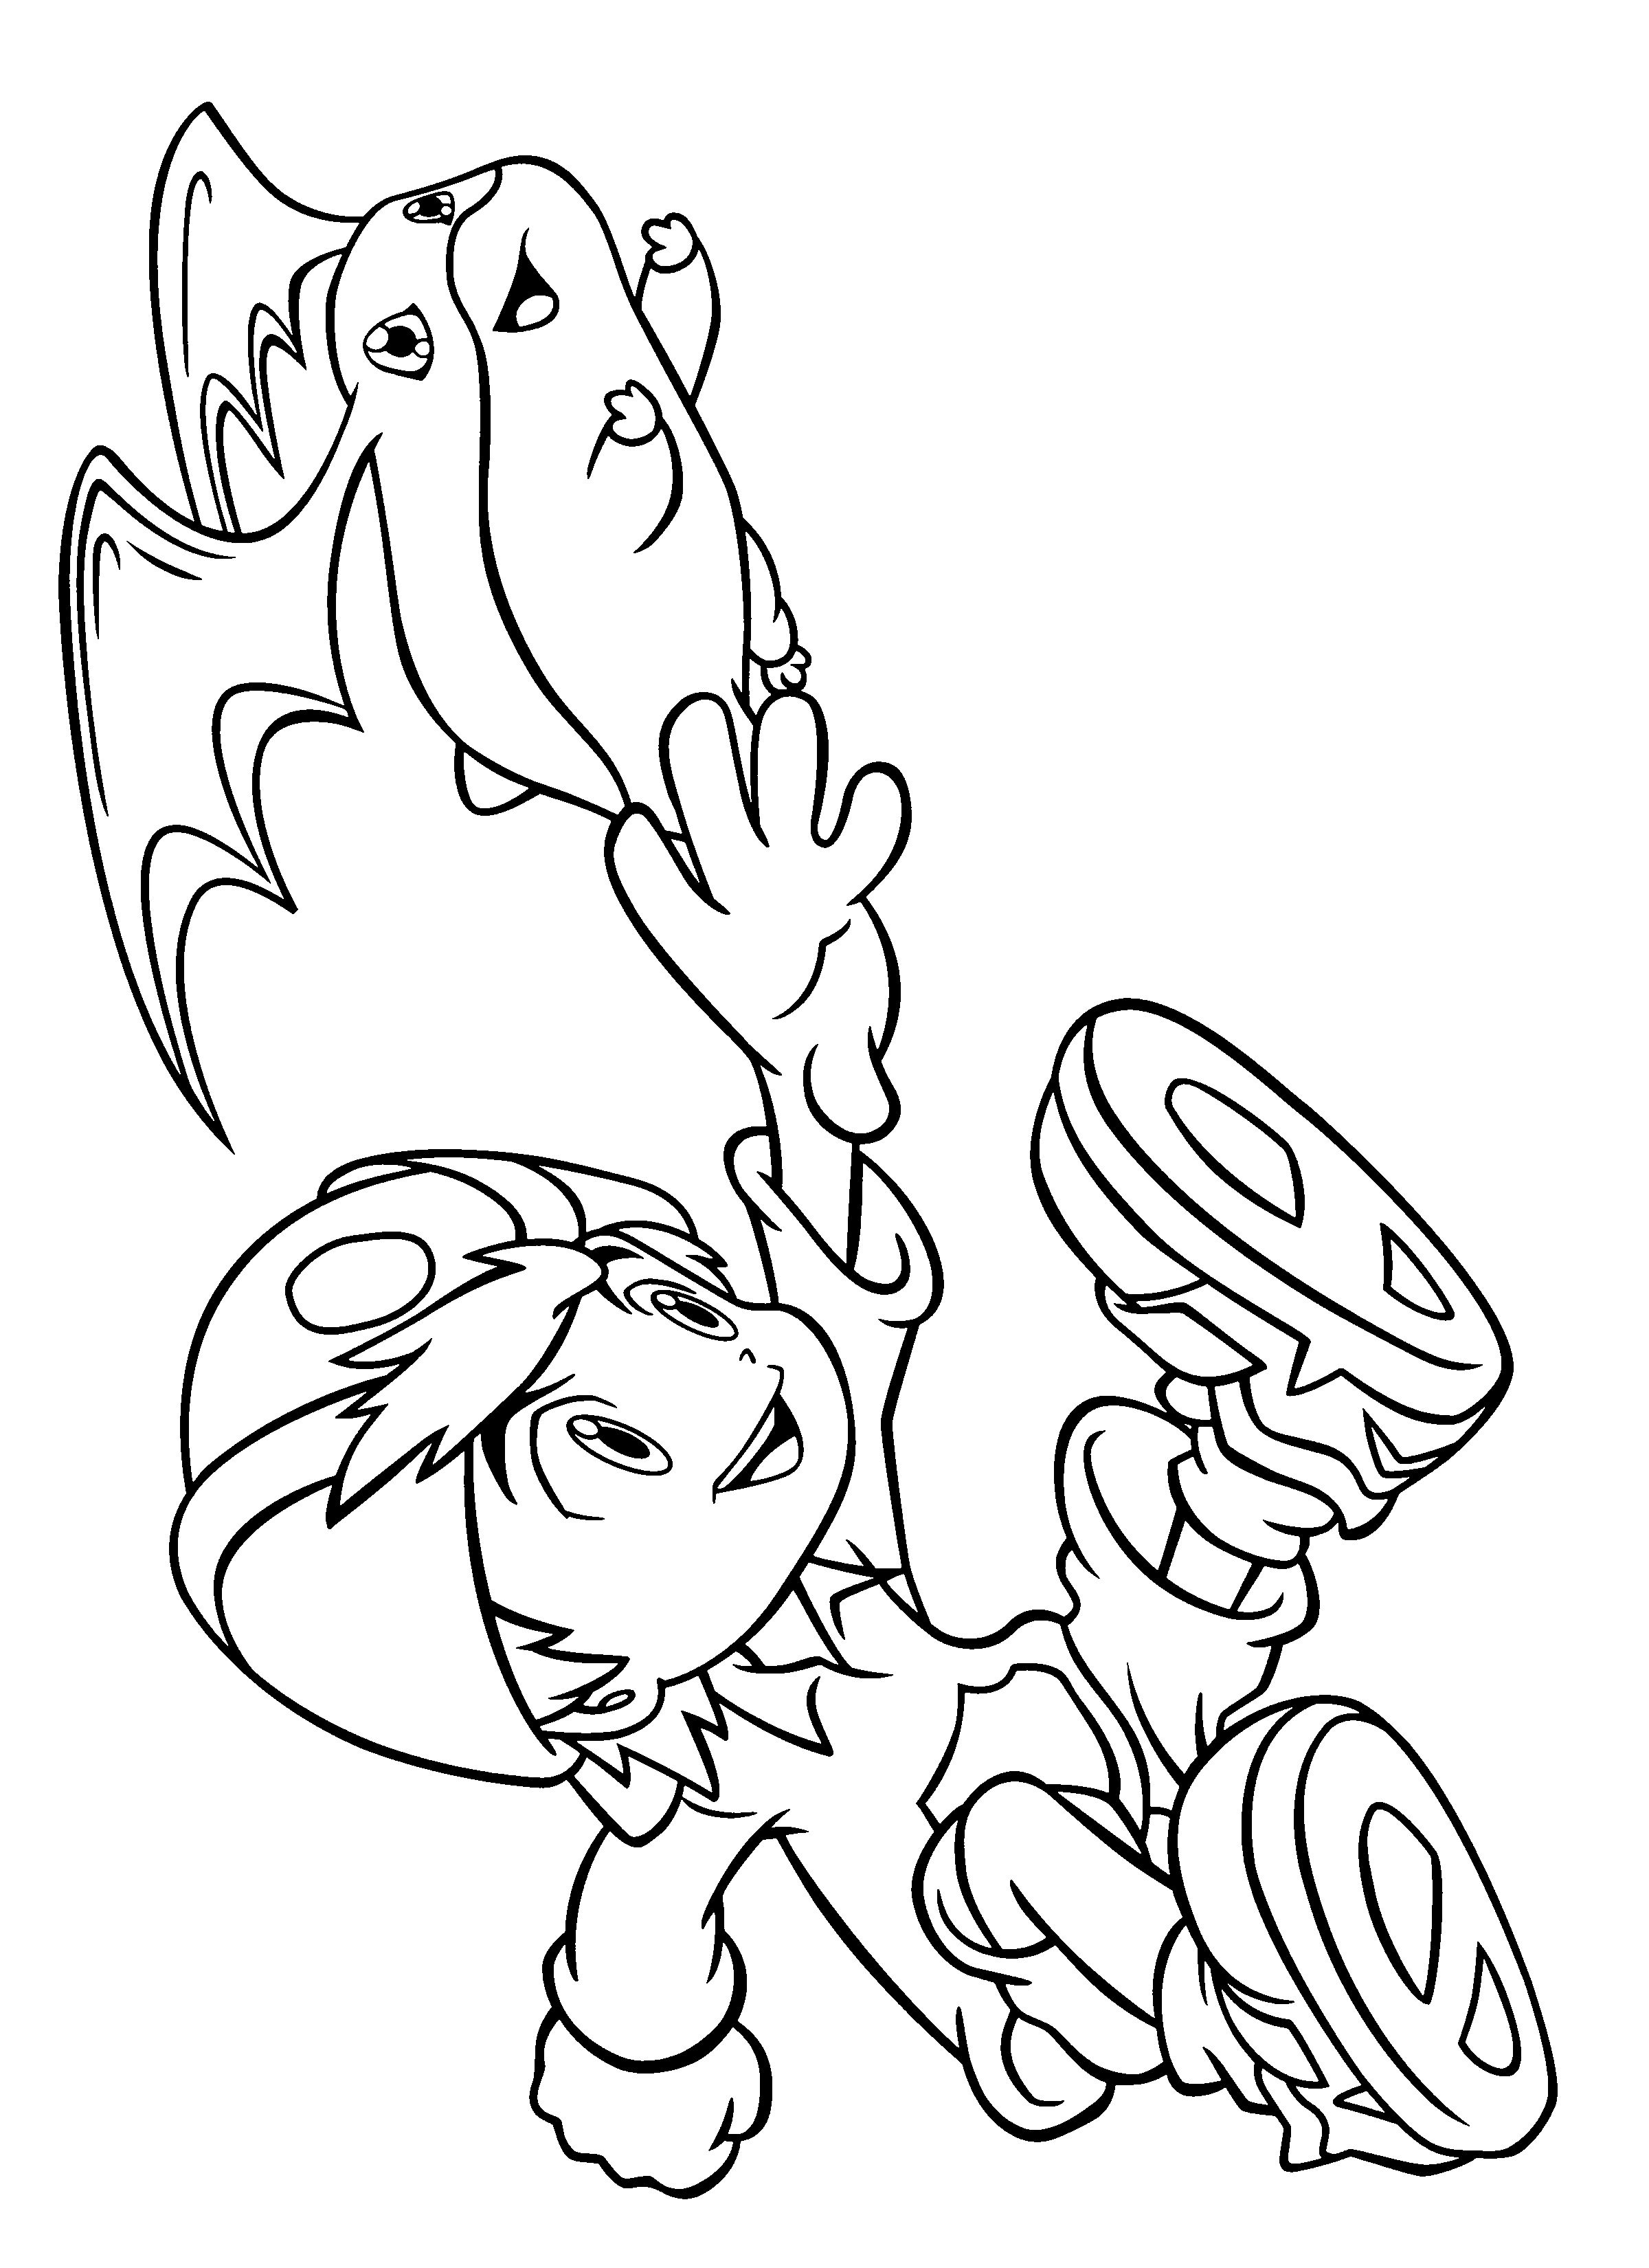 coloring digimon free printable digimon coloring pages for kids coloring digimon